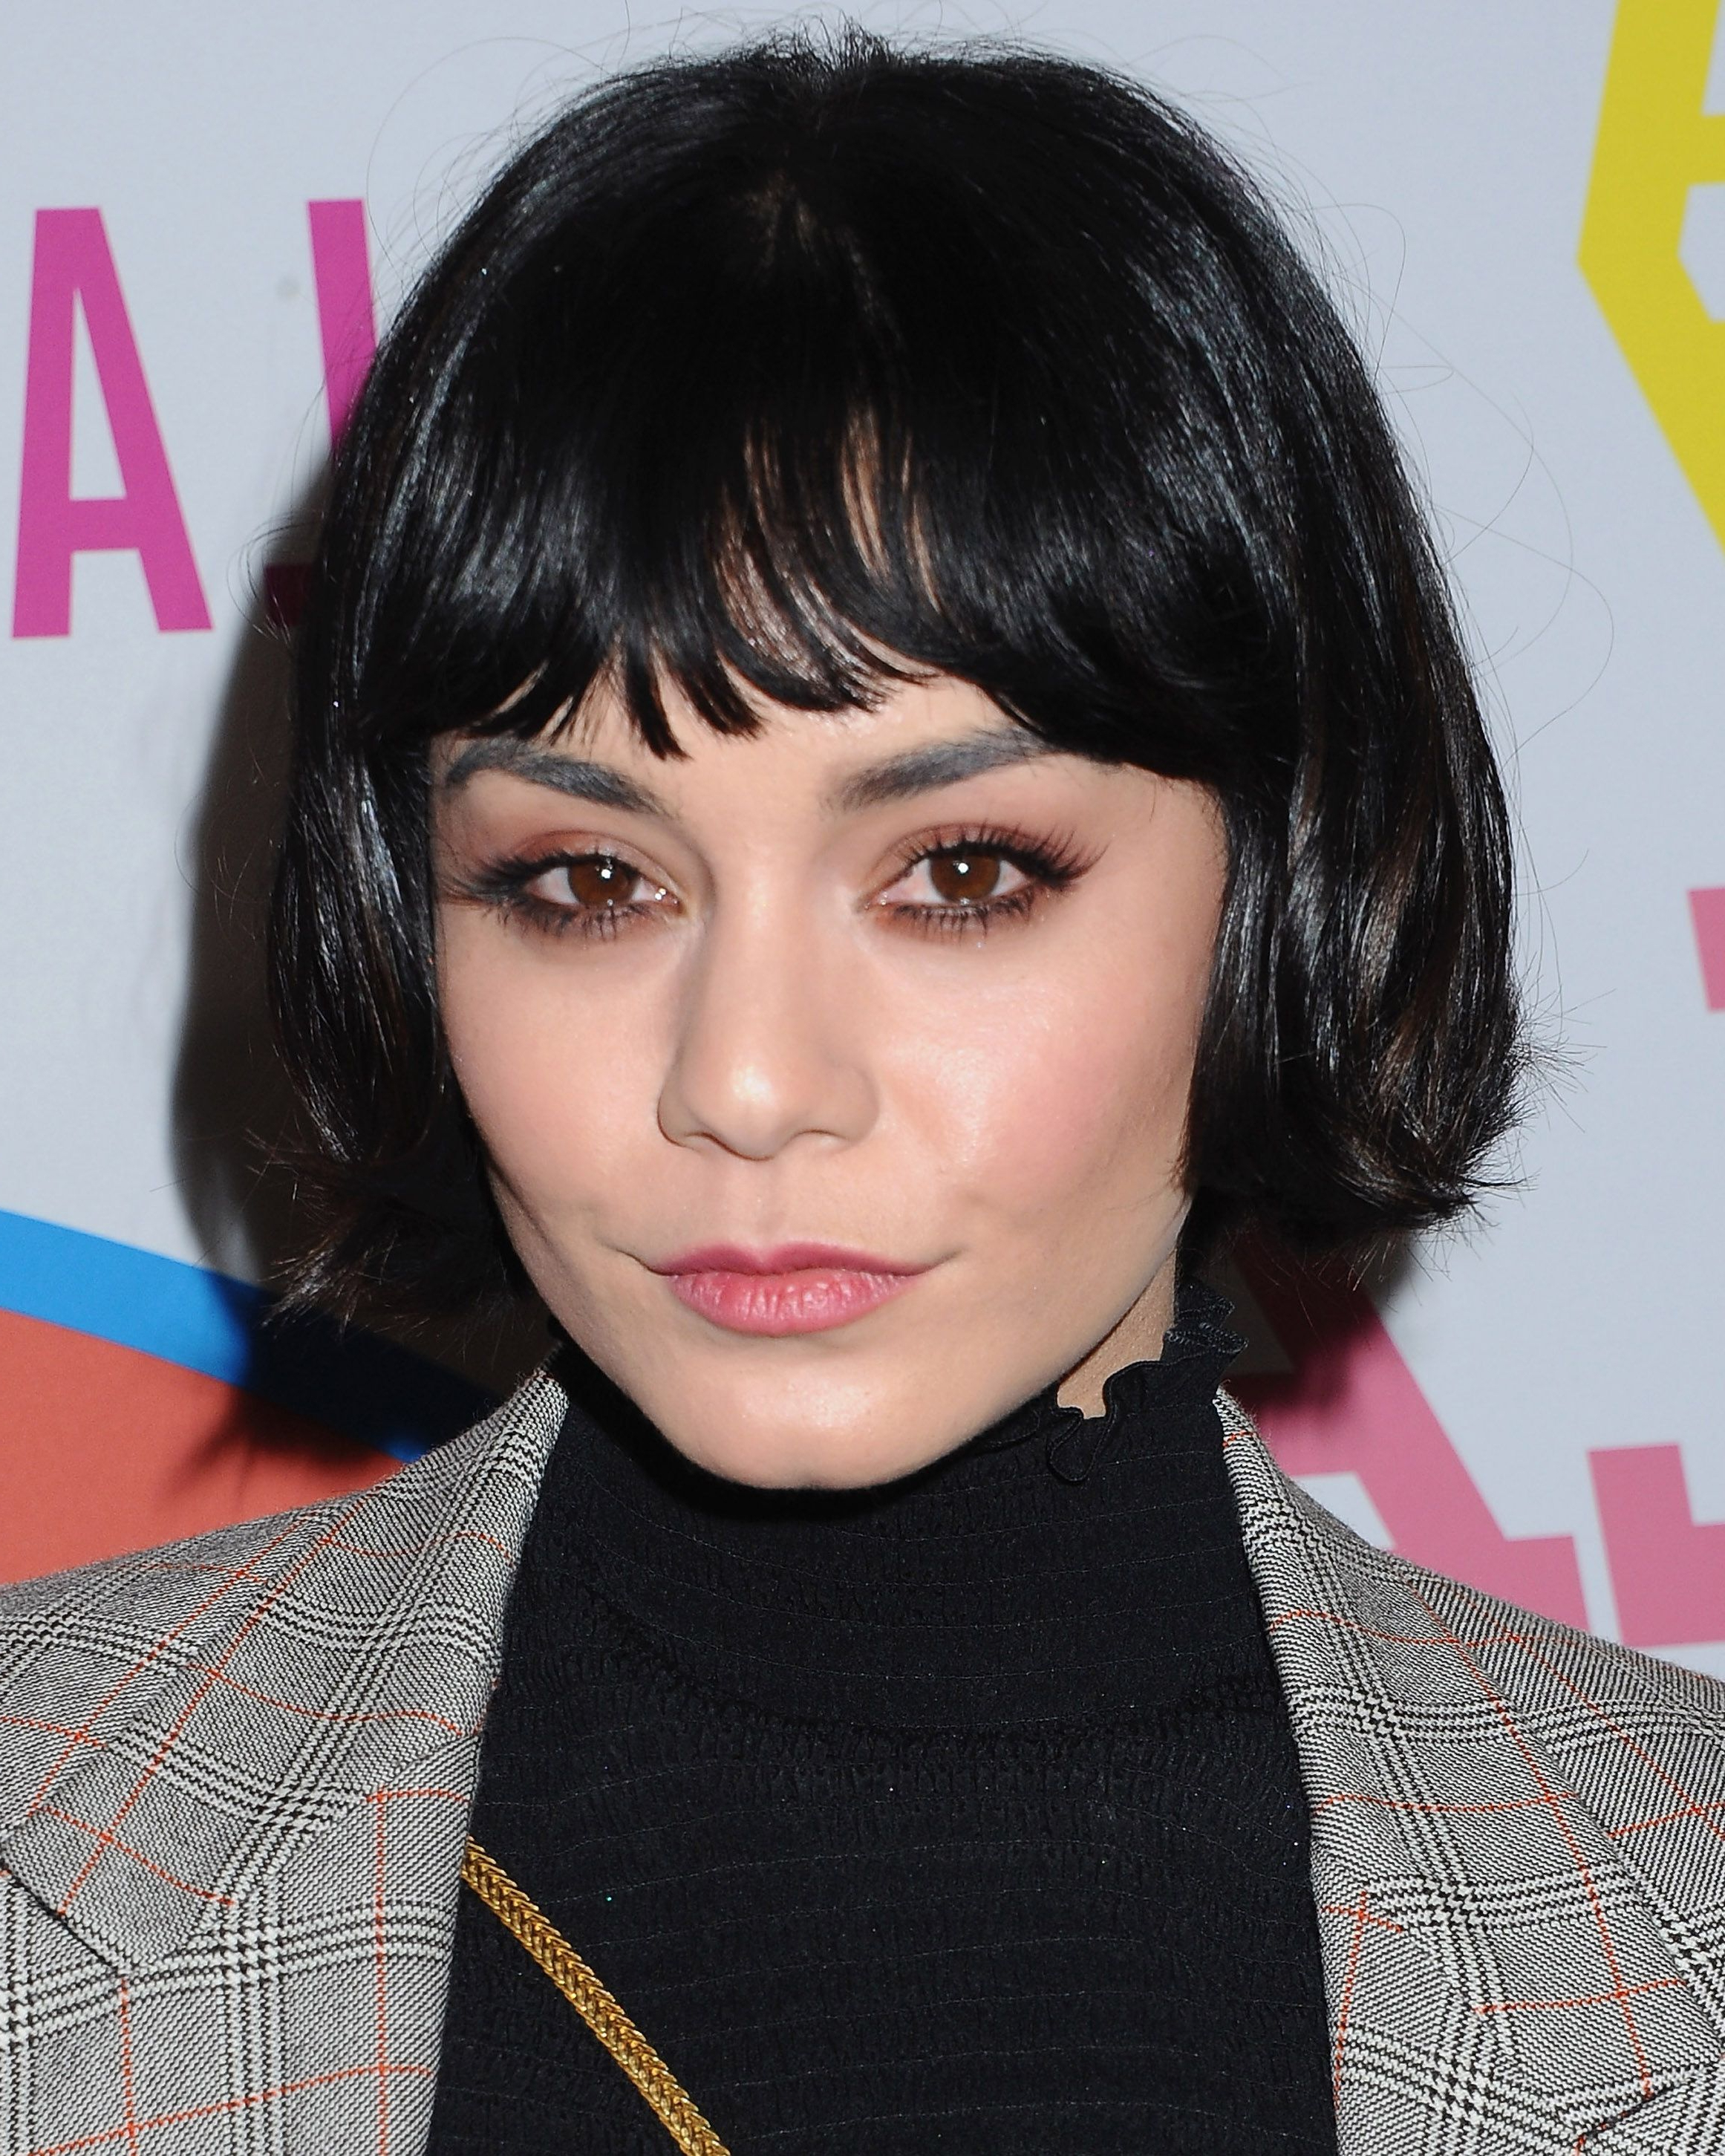 39 Bob Hairstyles For 2019 – Bob Haircuts To Copy This Year Intended For Fashionable Vanessa Hudgens Medium Haircuts (View 2 of 20)